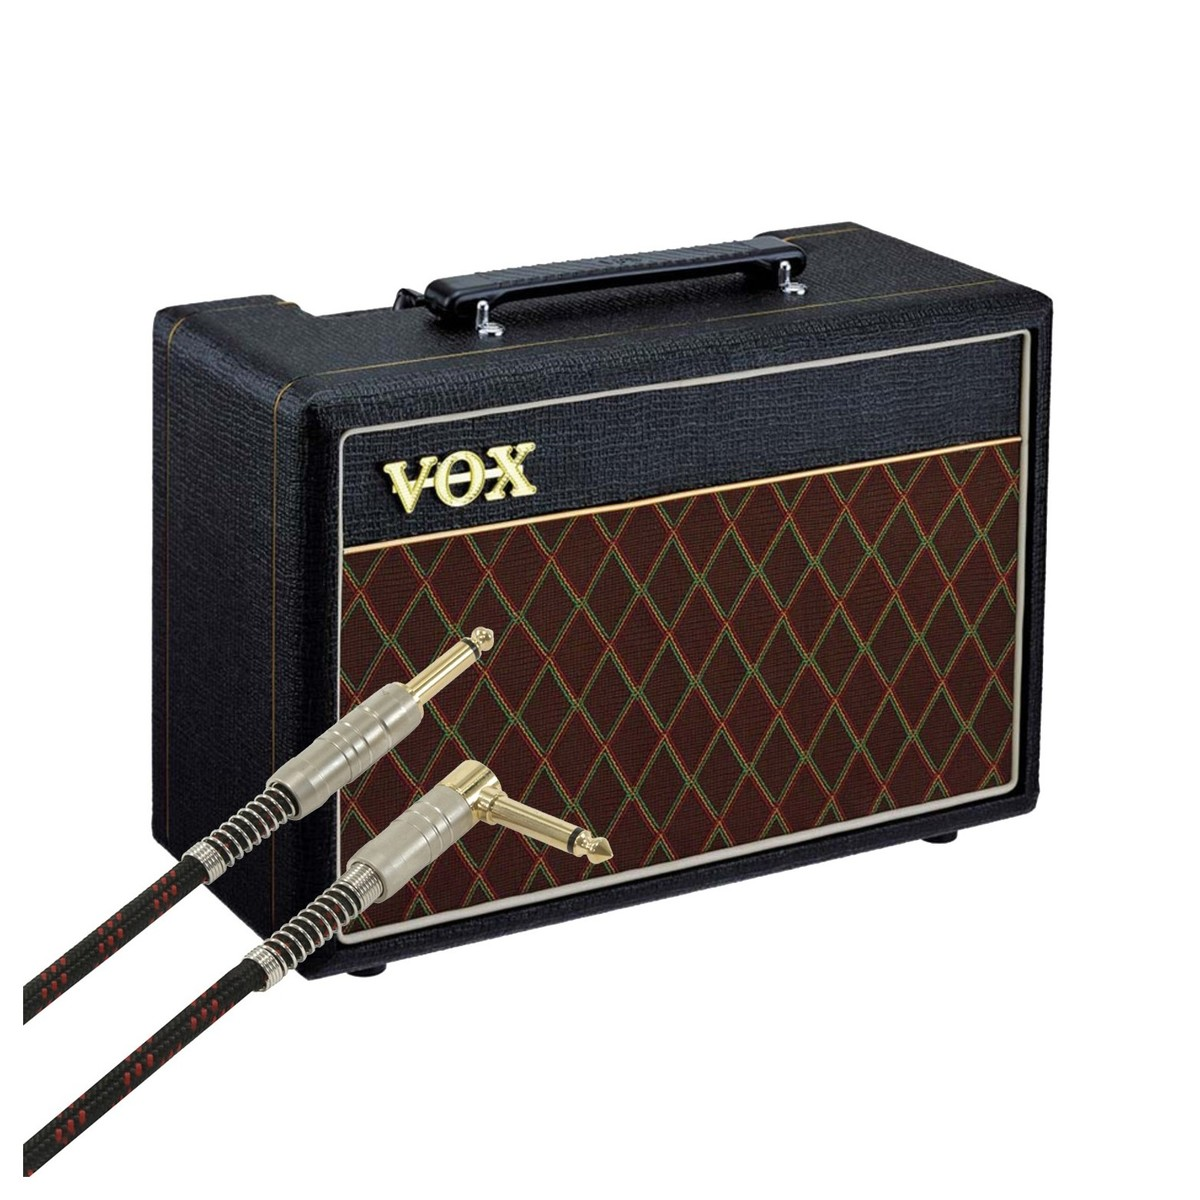 vox pathfinder 10 guitar combo amp with free 3m cable at gear4music. Black Bedroom Furniture Sets. Home Design Ideas